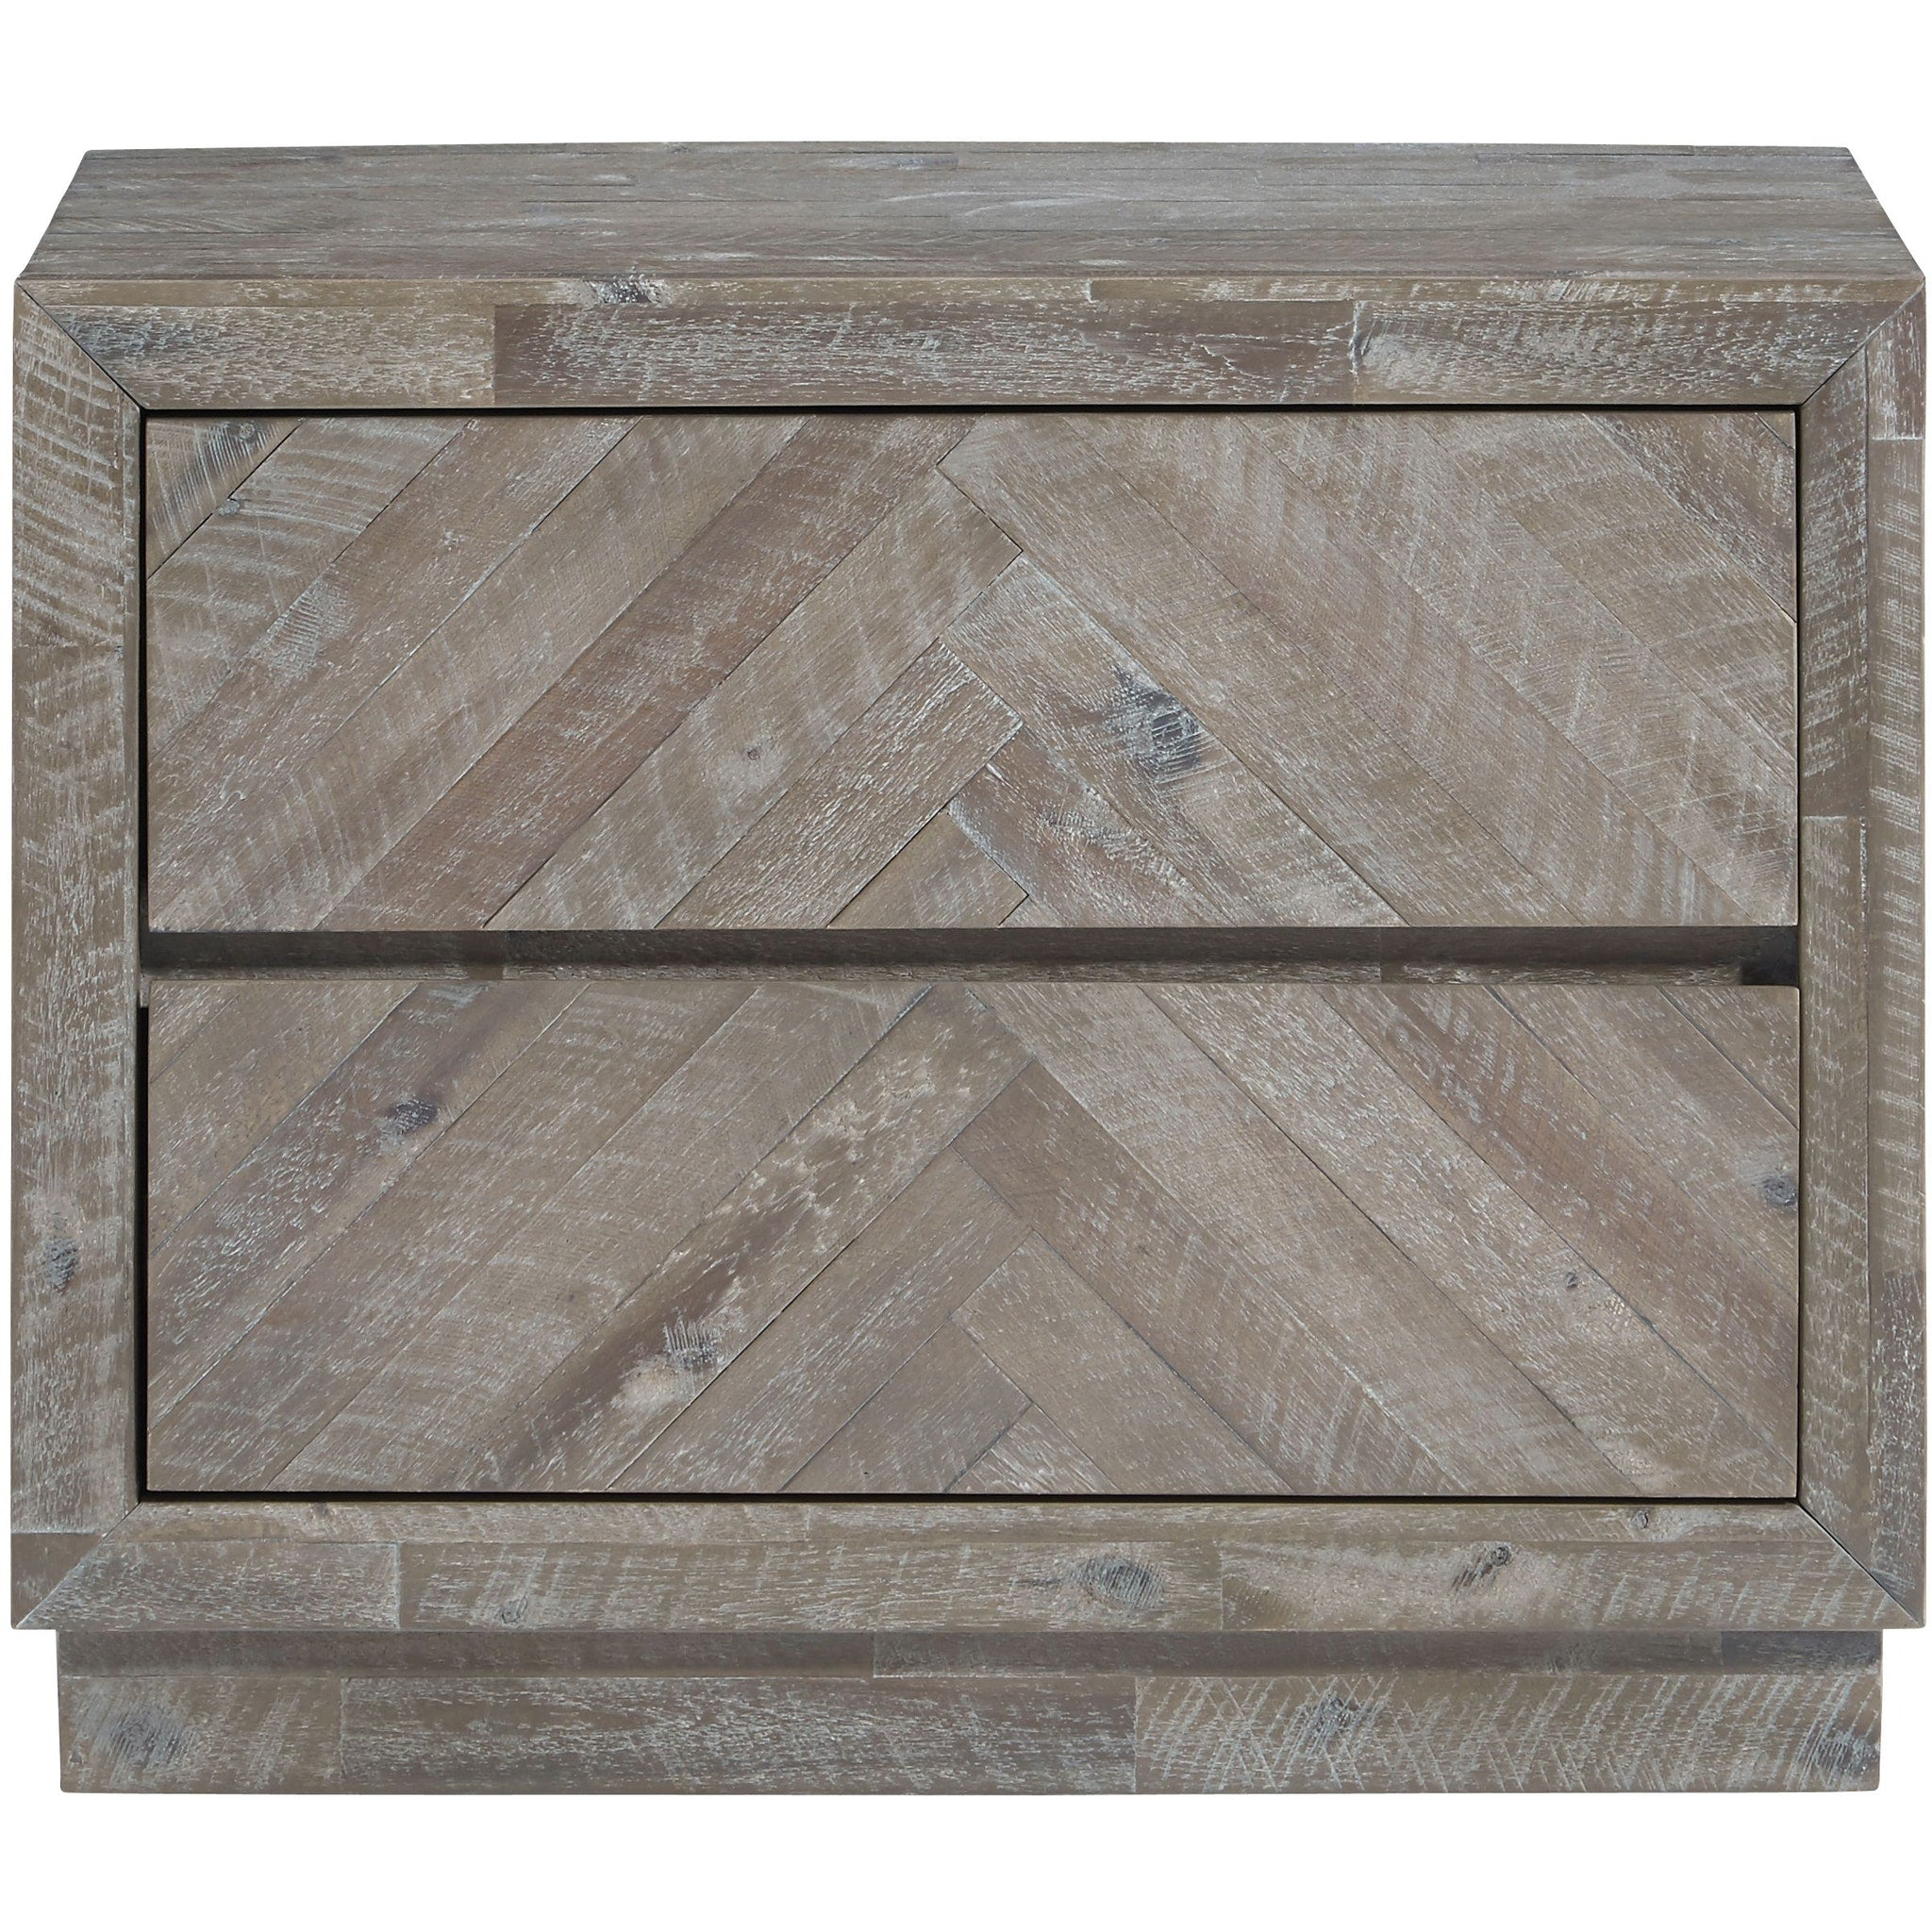 Herringbone Solid Wood Two Drawer Nightstand in Rustic Latte